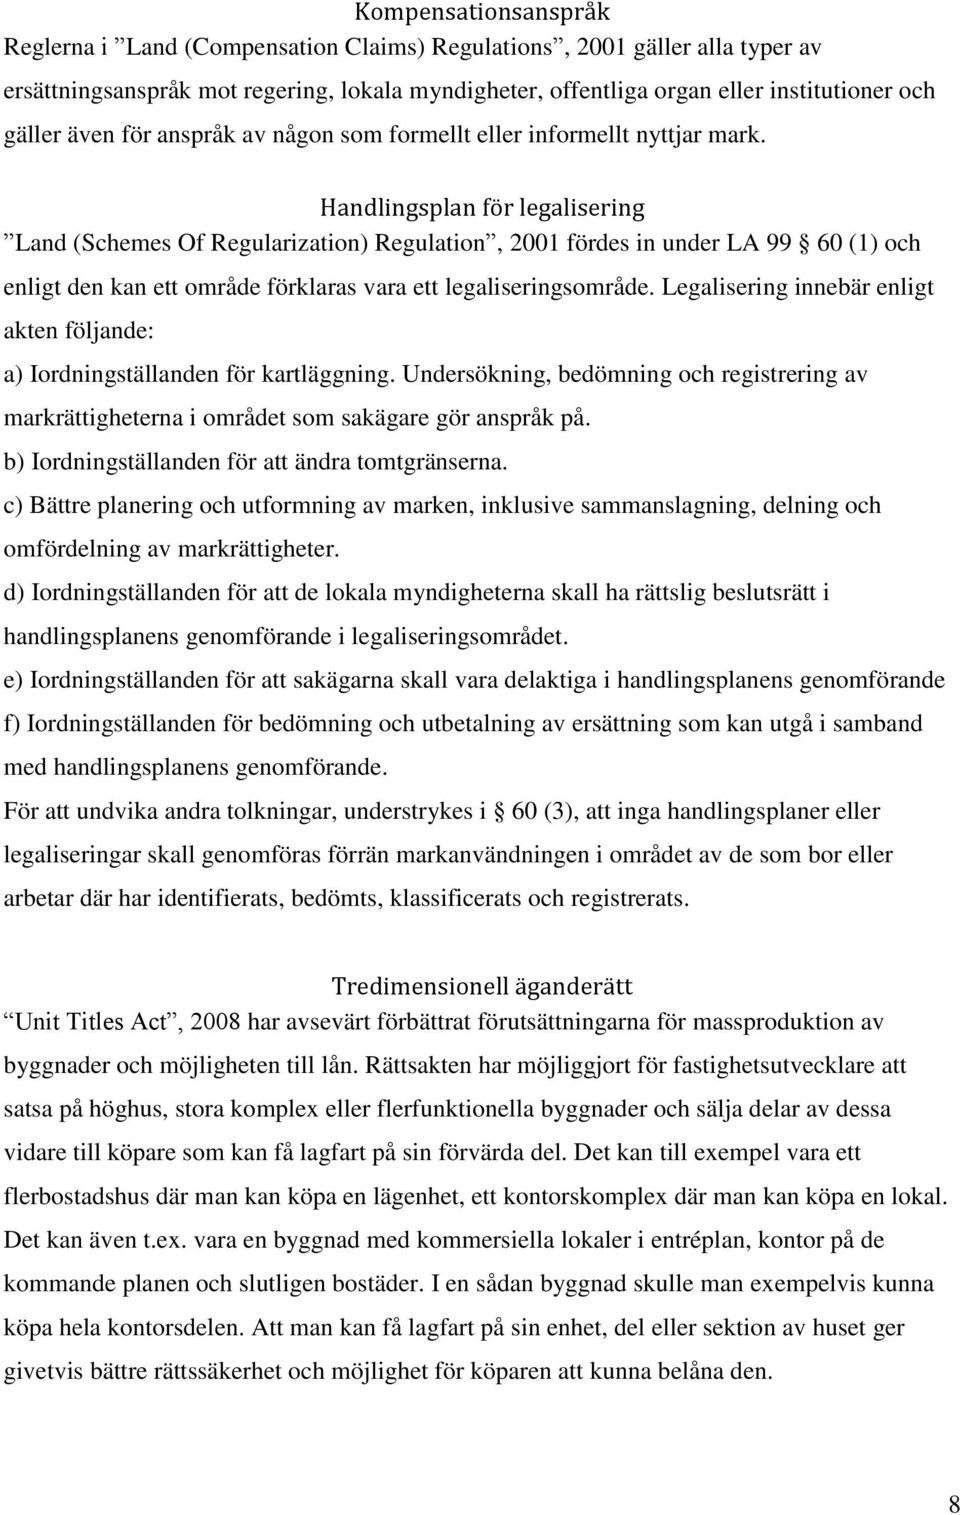 Handlingsplan för legalisering Land (Schemes Of Regularization) Regulation, 2001 fördes in under LA 99 60 (1) och enligt den kan ett område förklaras vara ett legaliseringsområde.